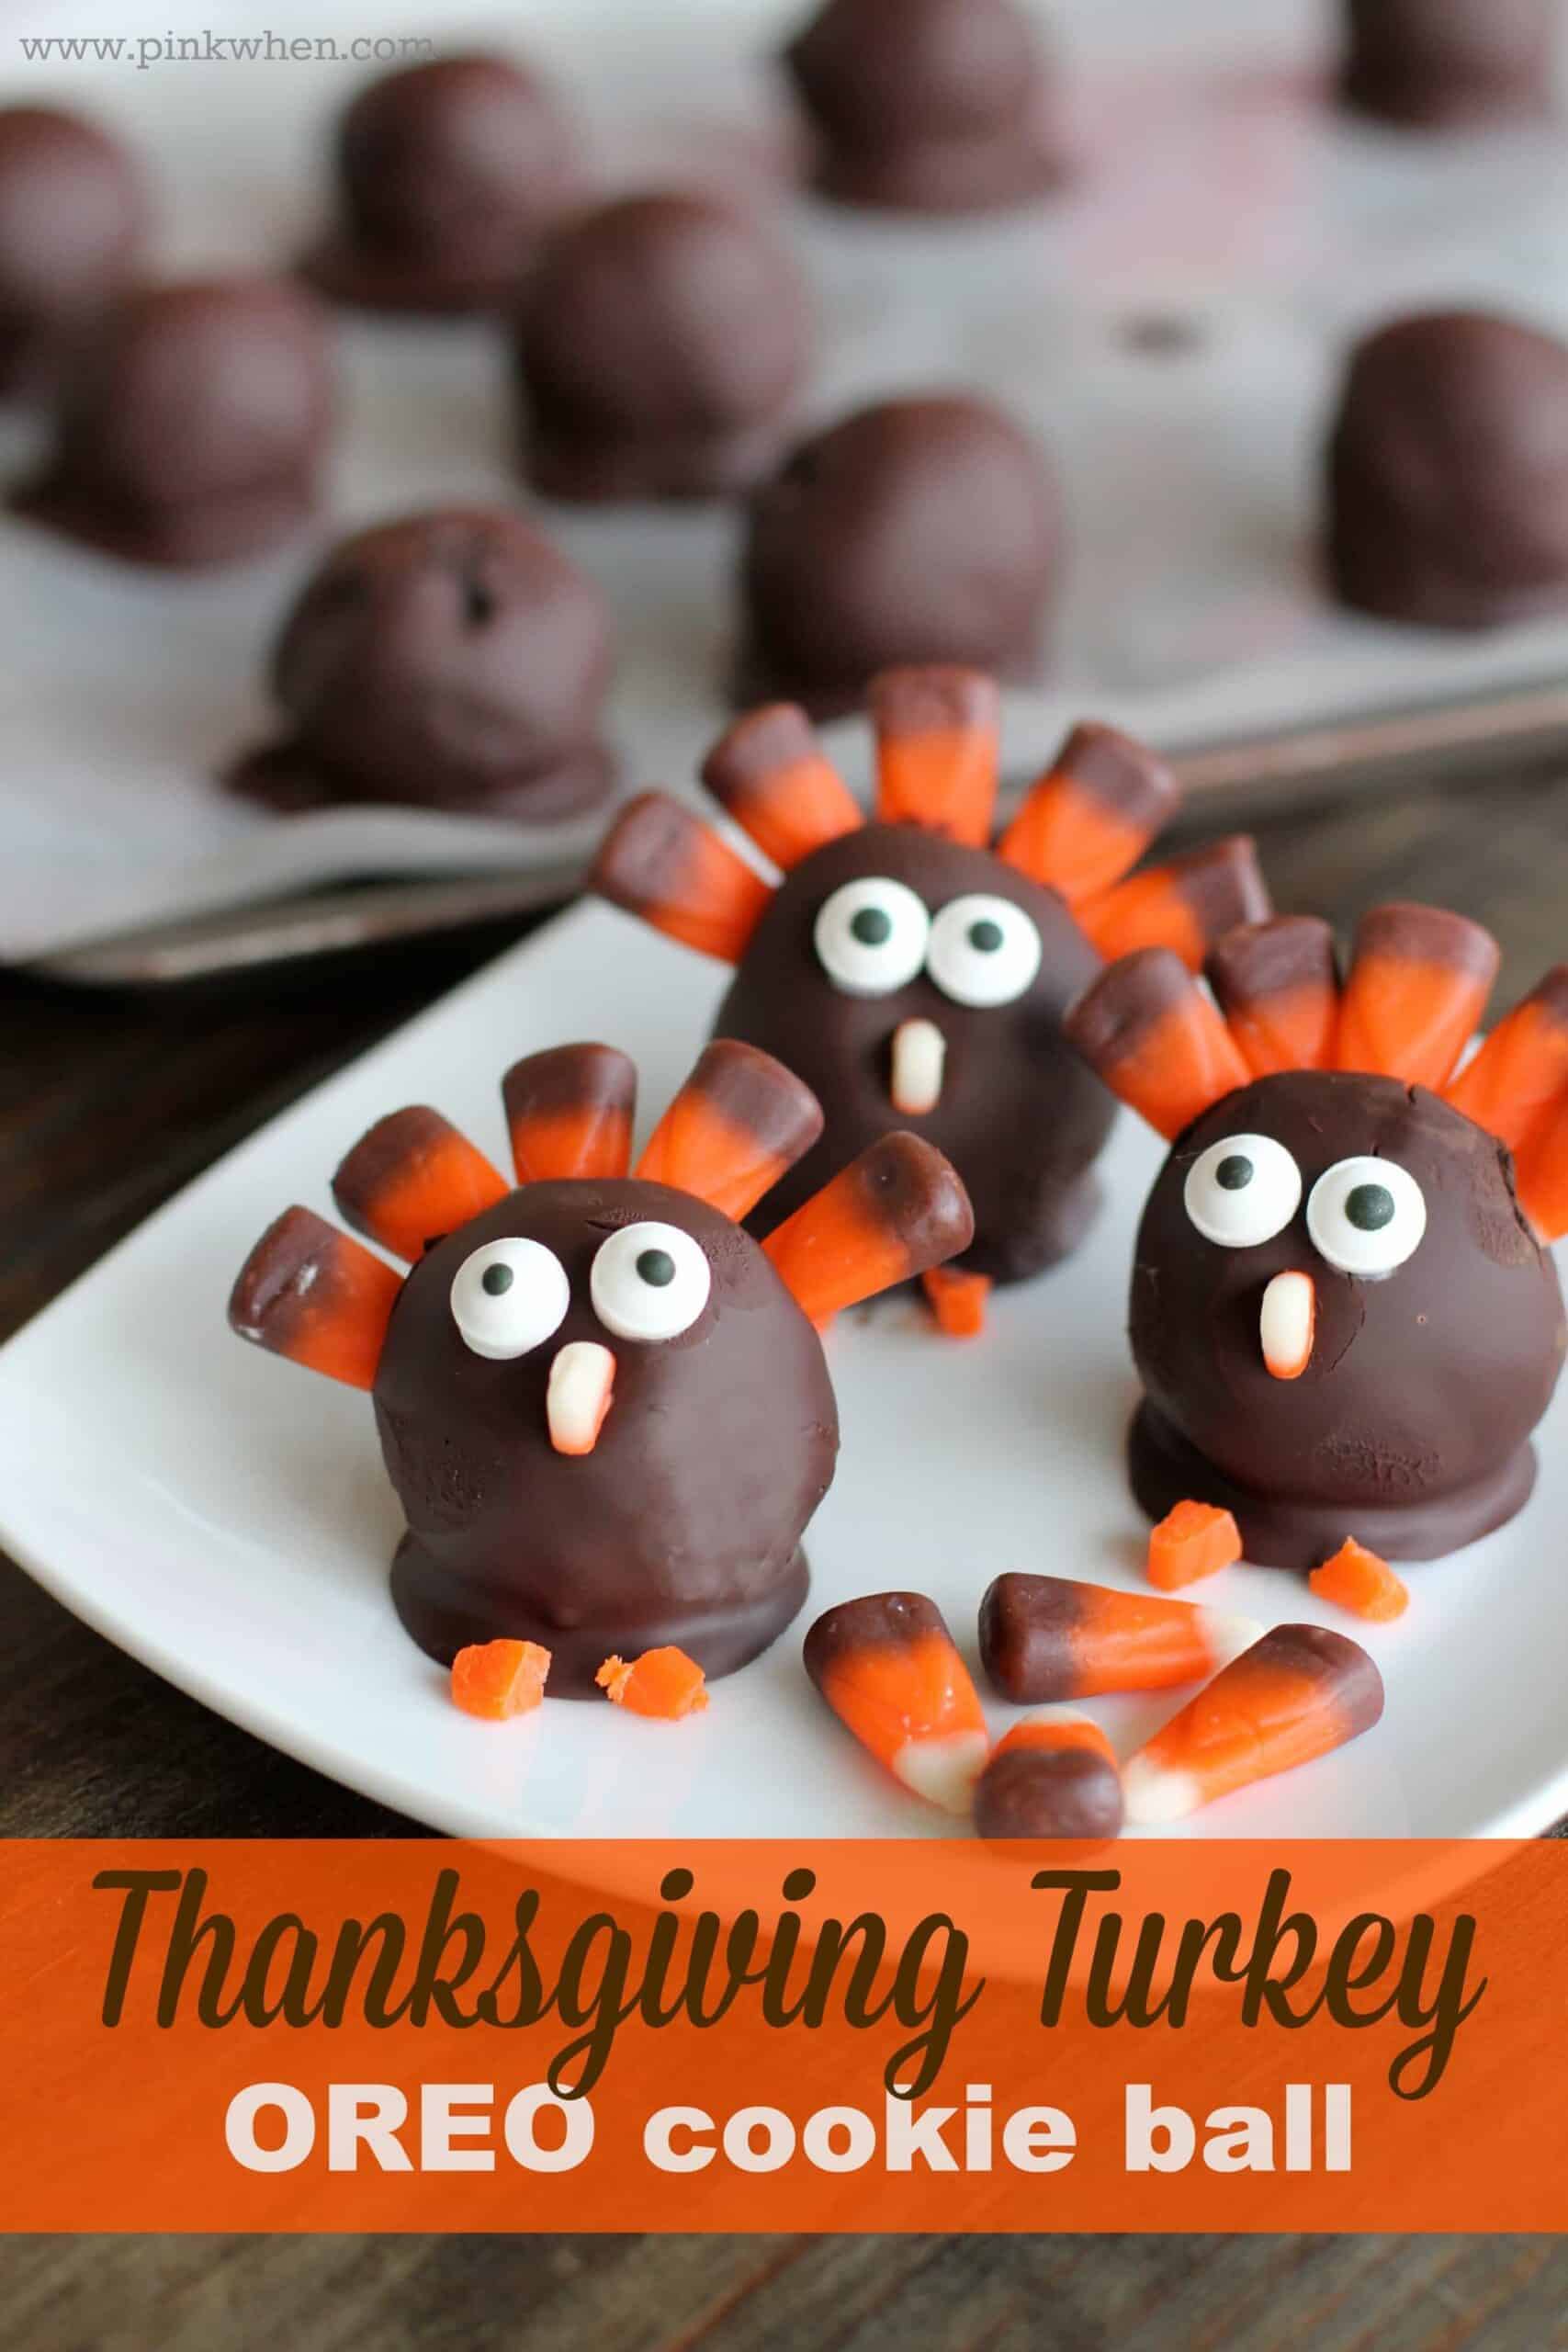 OREO-Cookie-Balls-Thanksgiving-Turkey-OREOCookieBalls-CollectiveBias-shop-2